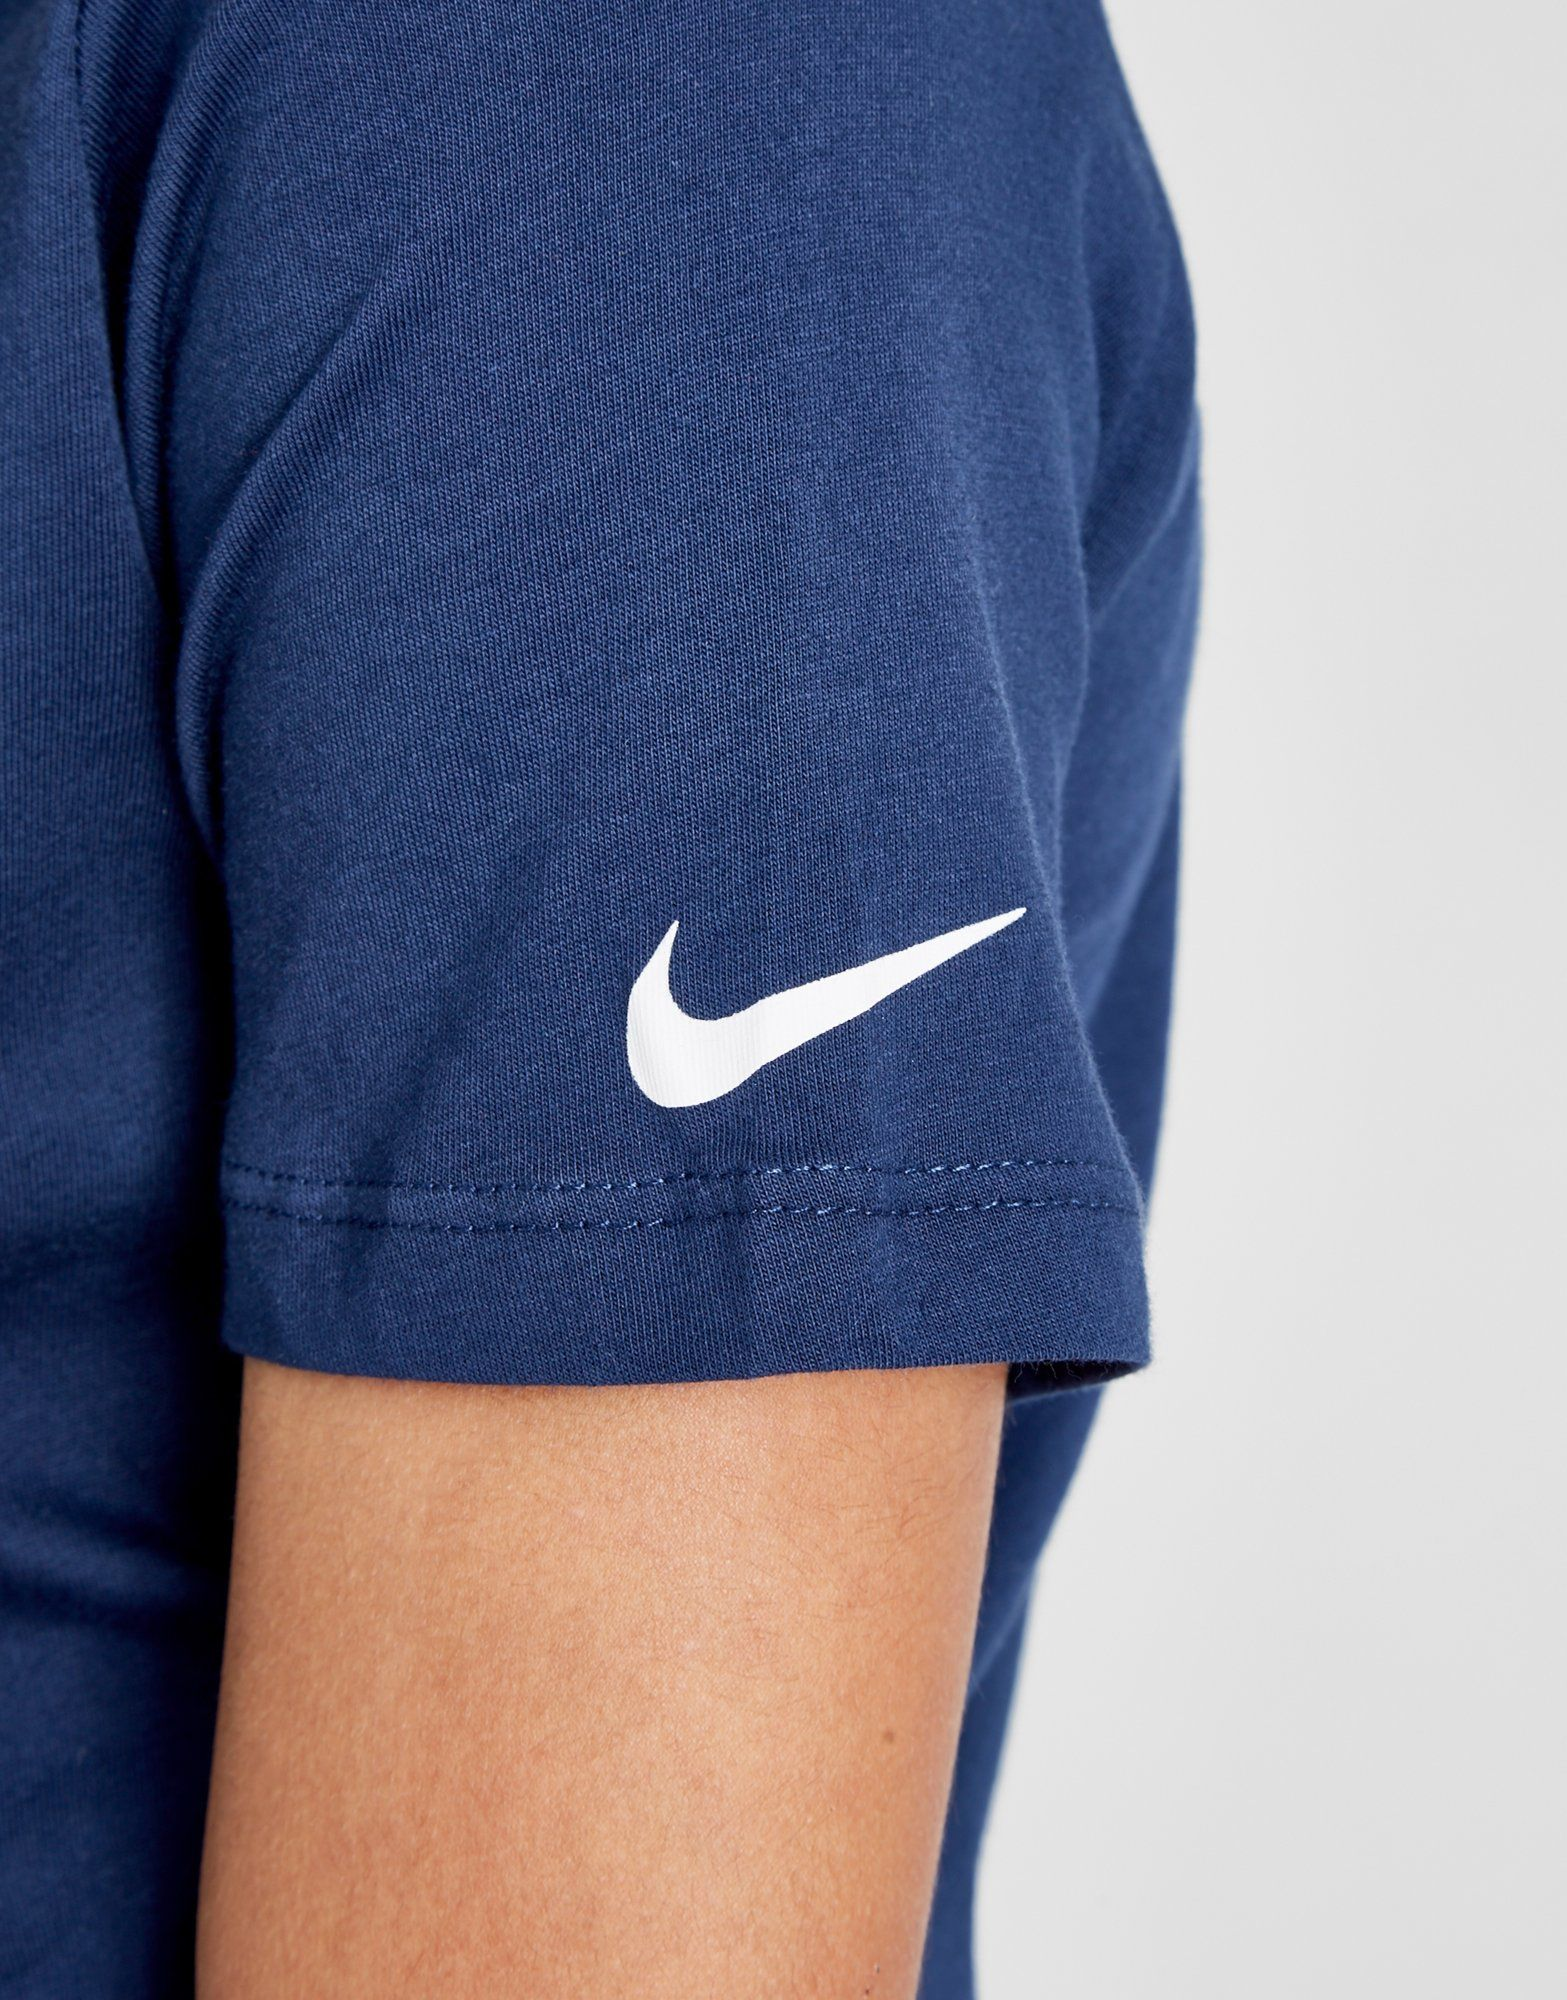 nike t shirt size guide